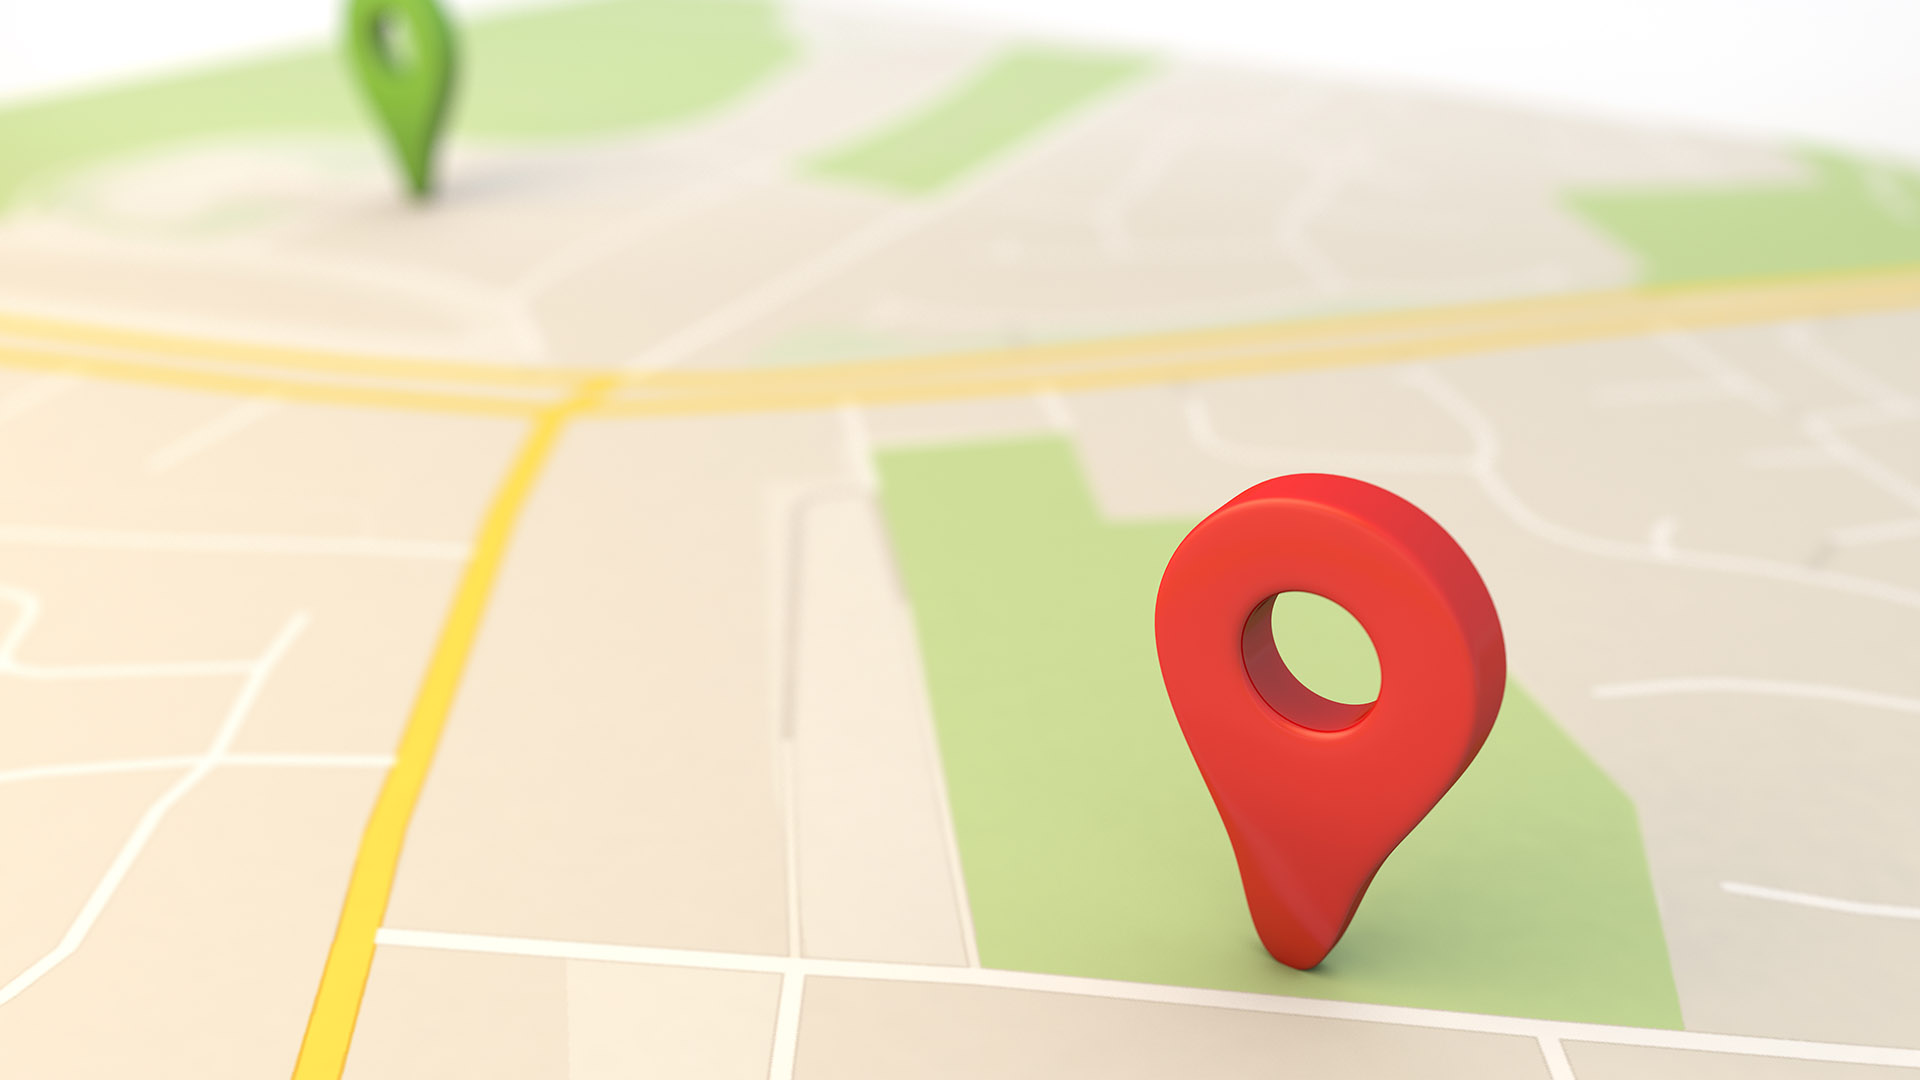 Get Free GPS tracker without installing on target phone